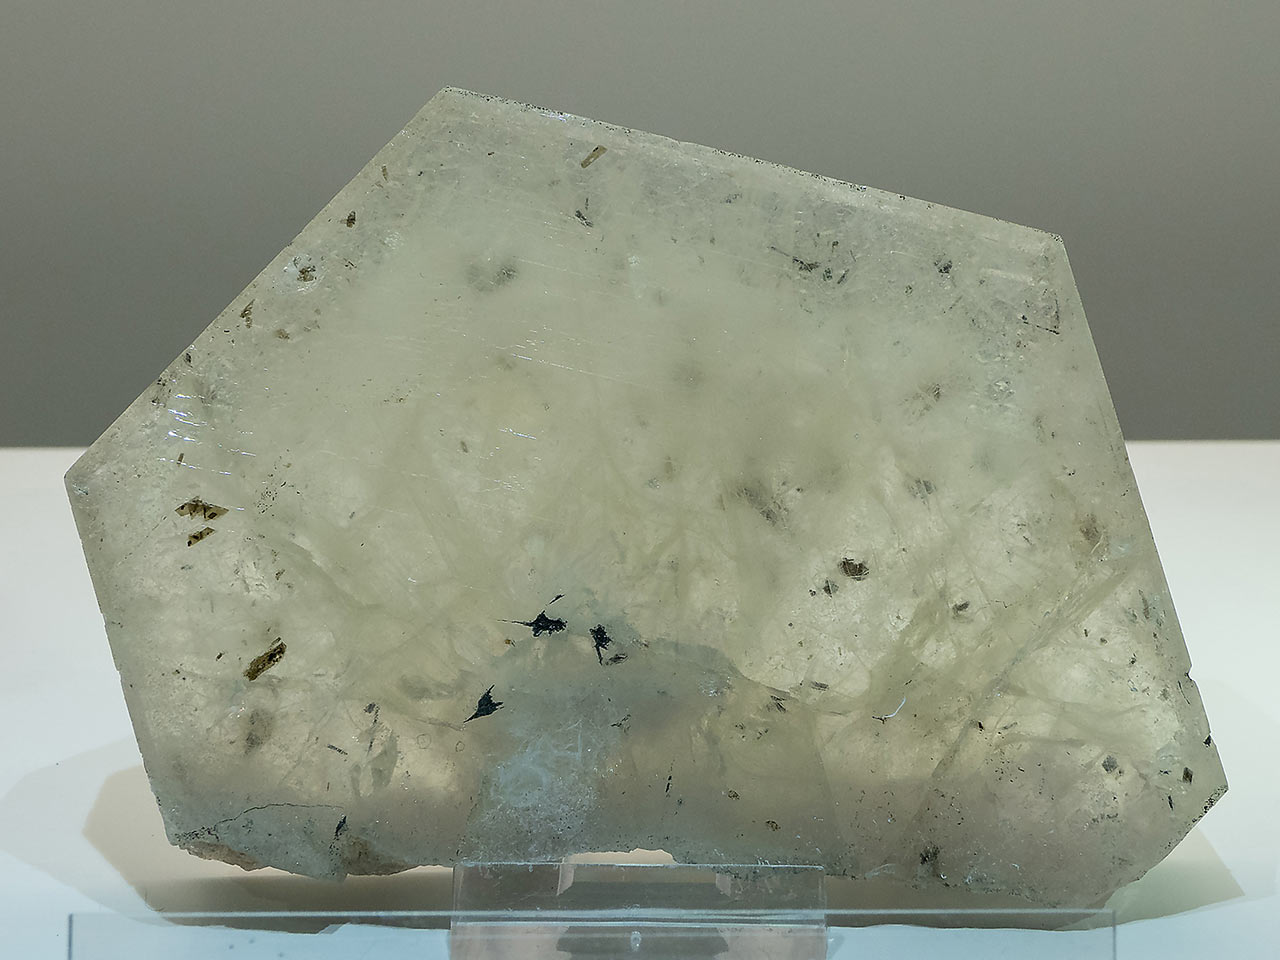 Huge apatite crystal from the Zillertal Alps, Austria